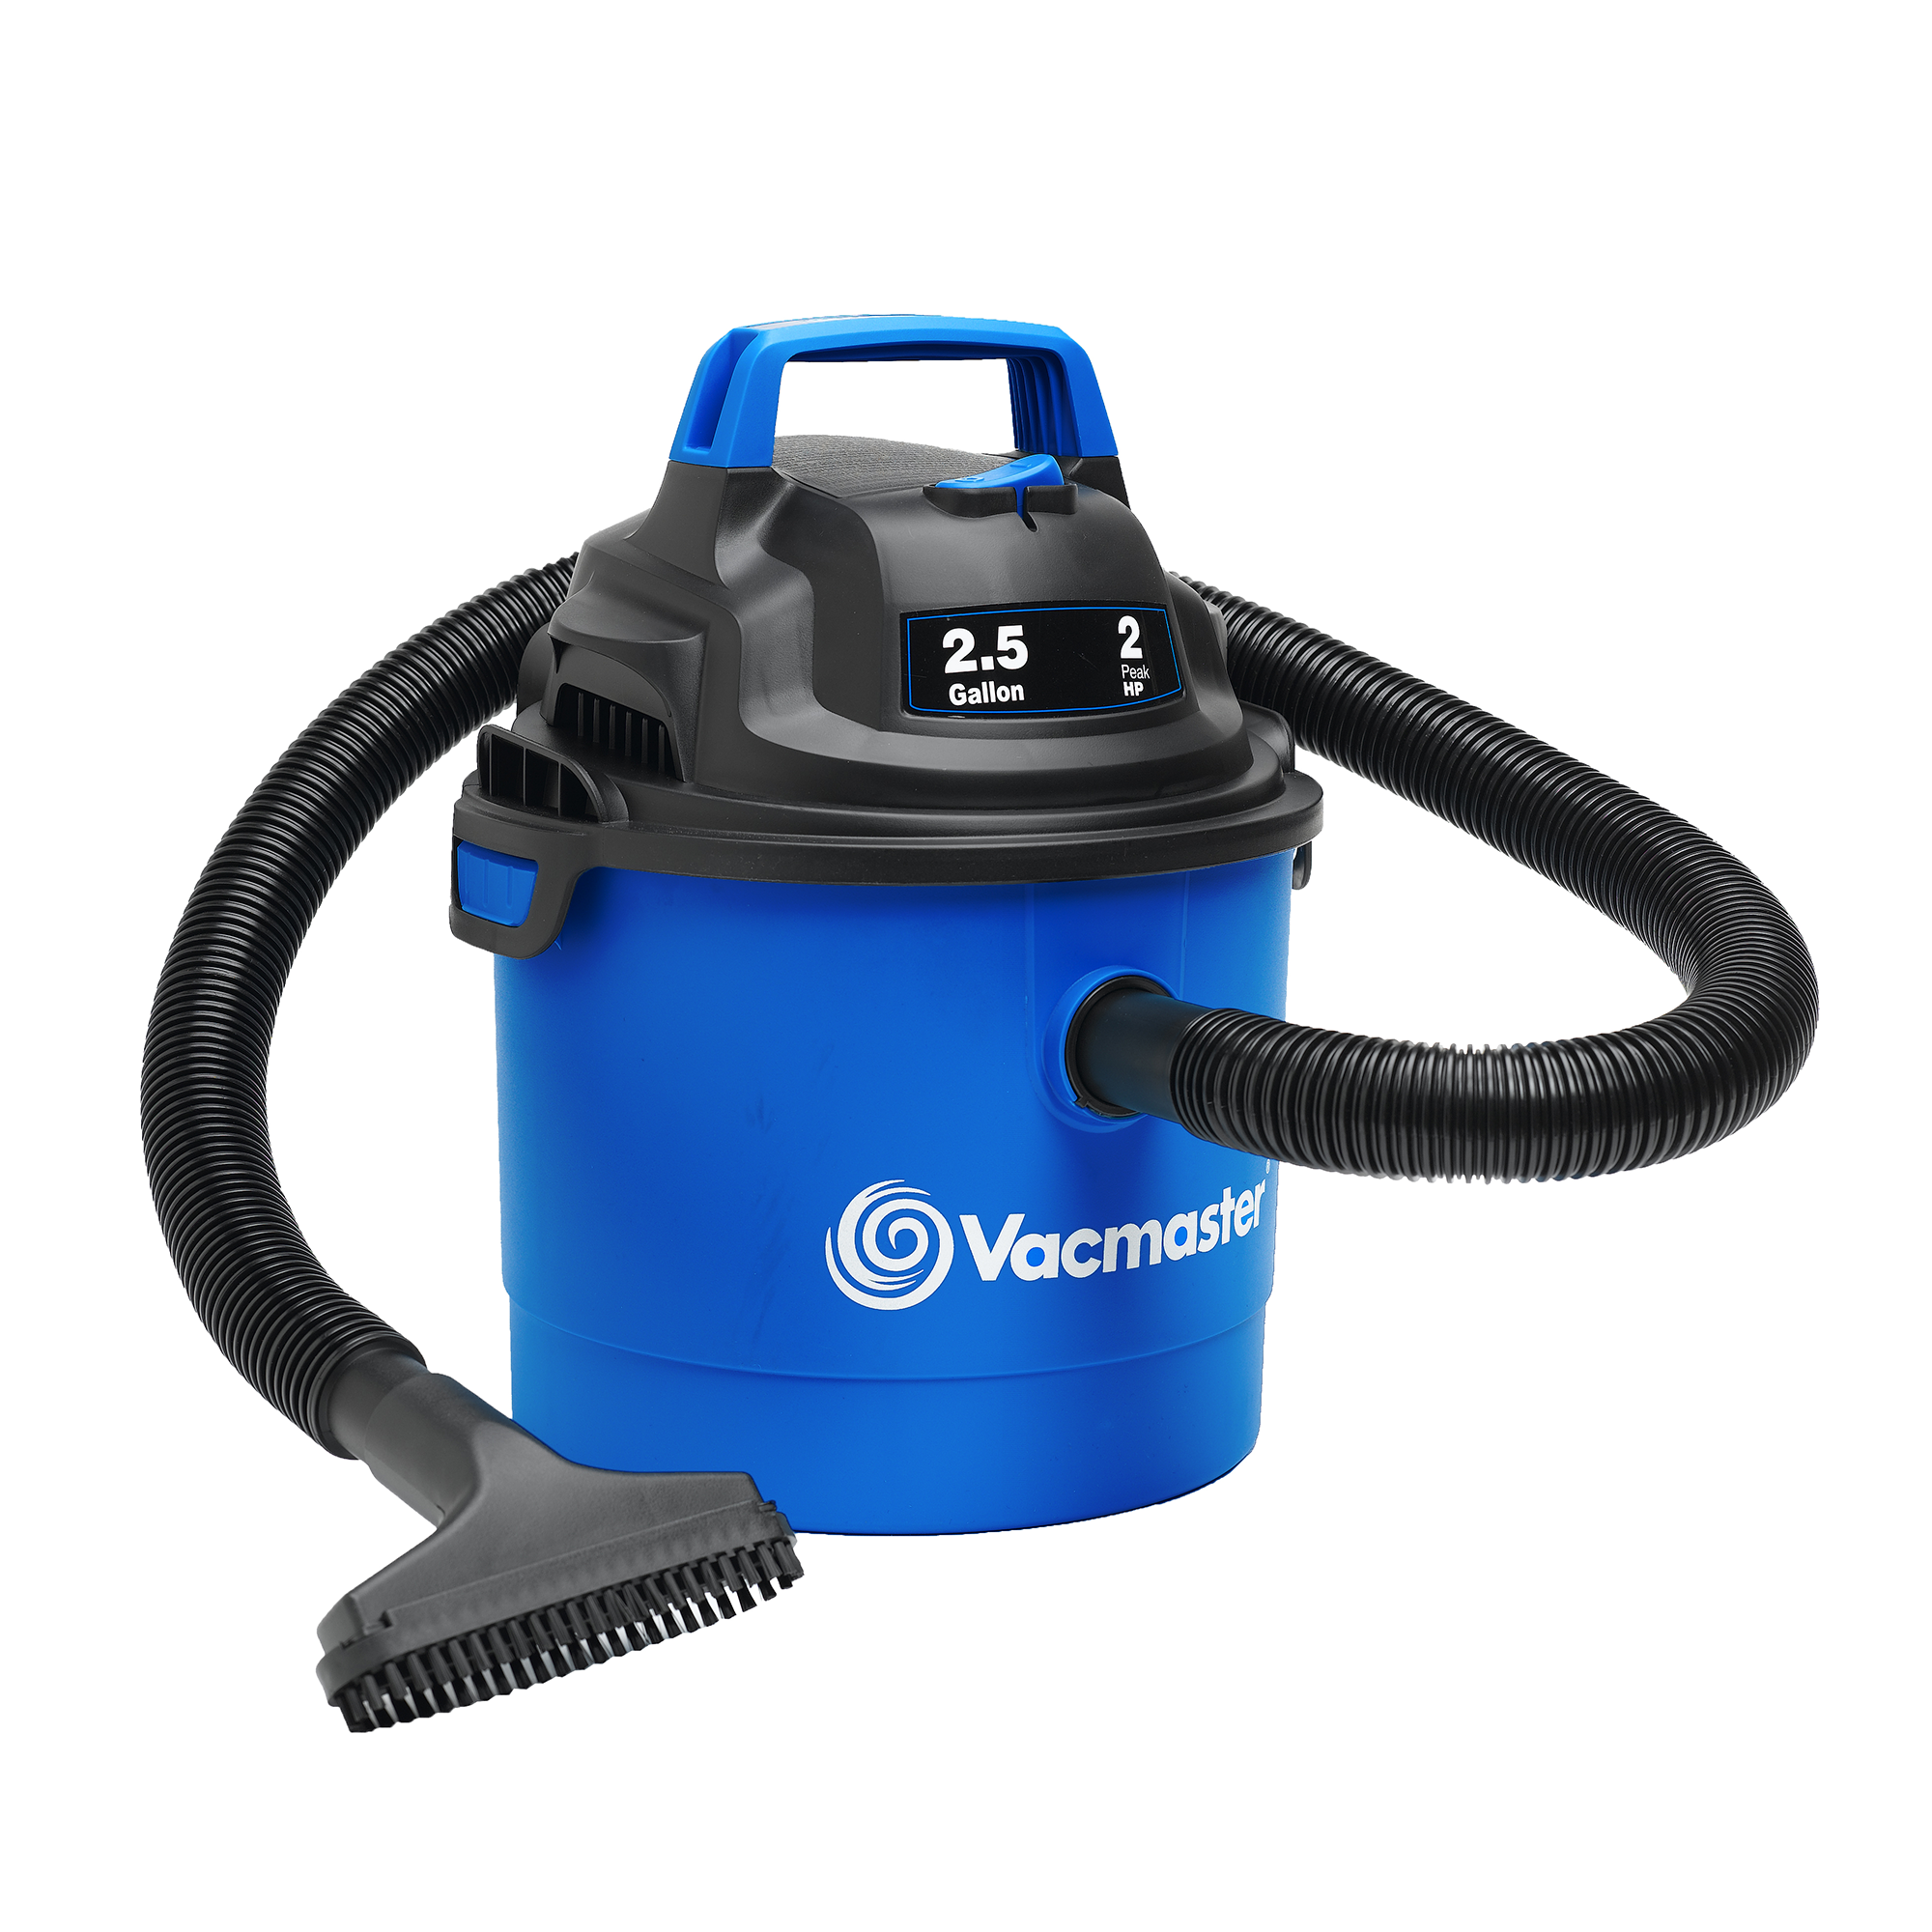 Vacmaster 2.5-Gallon Portable Wall-Mountable Wet/Dry Vacuum, VOM205P